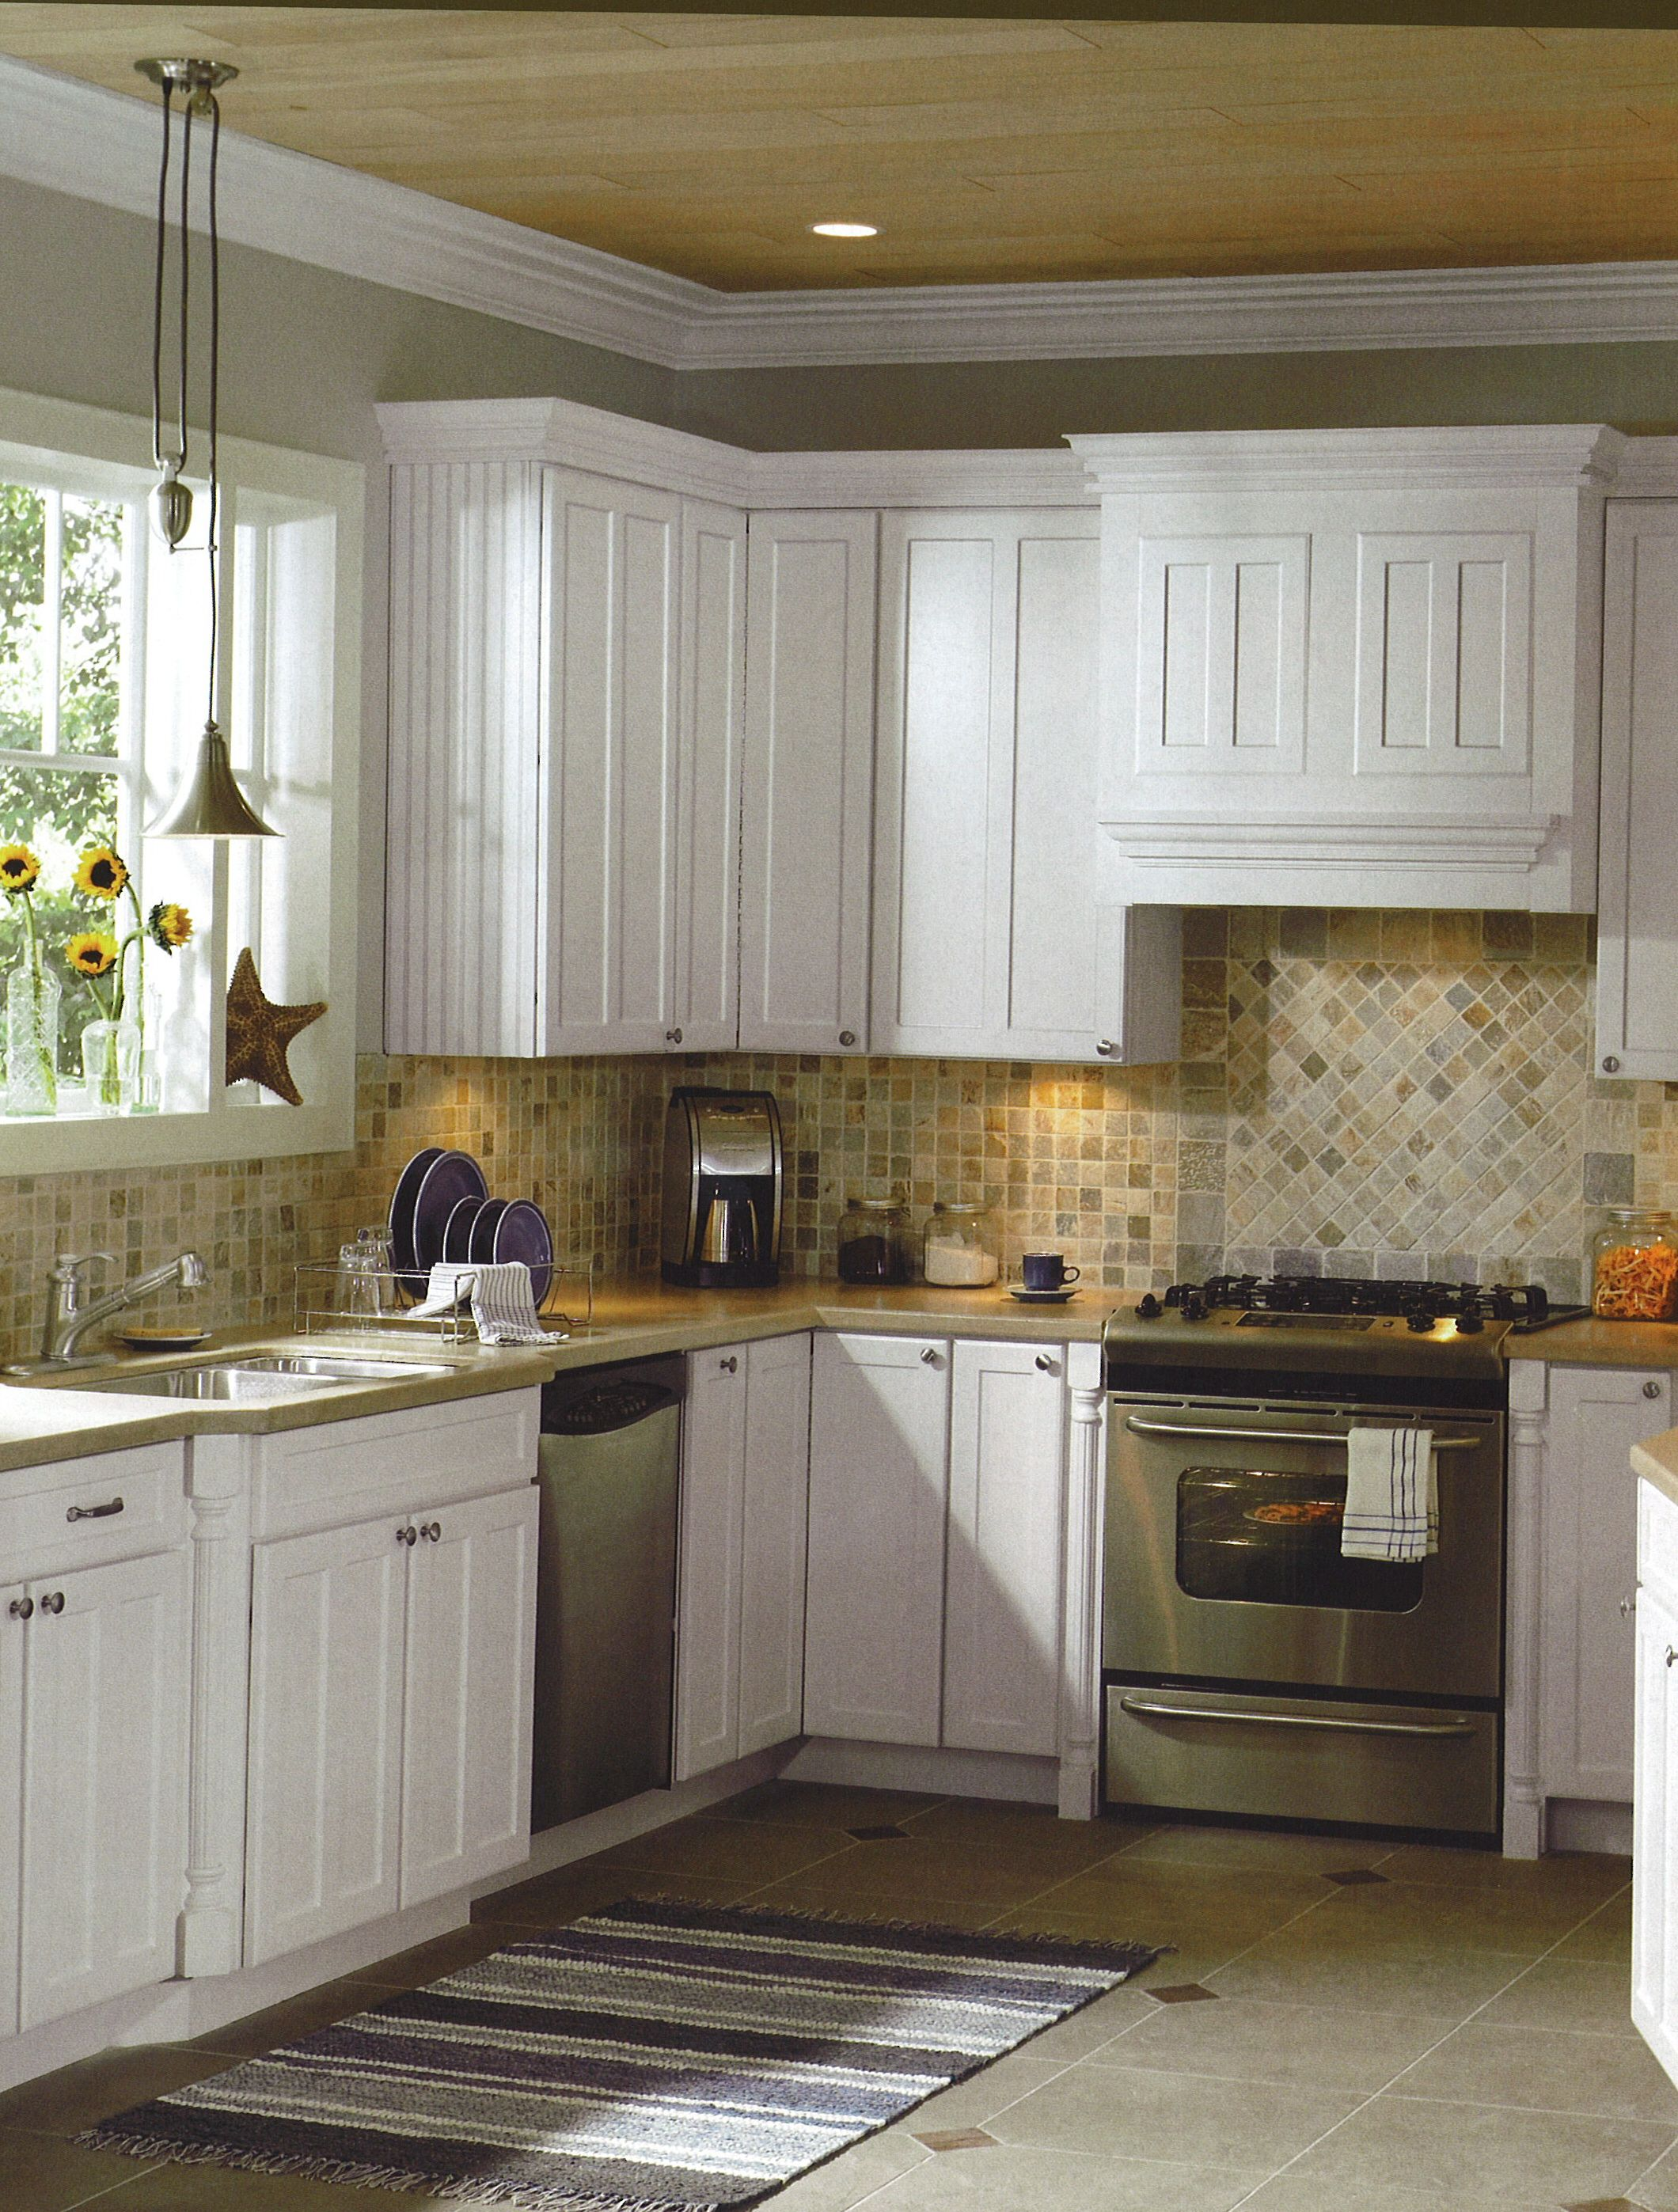 Best Country Kitchen Designs best floor and counter color for white kitchen cabinets | country